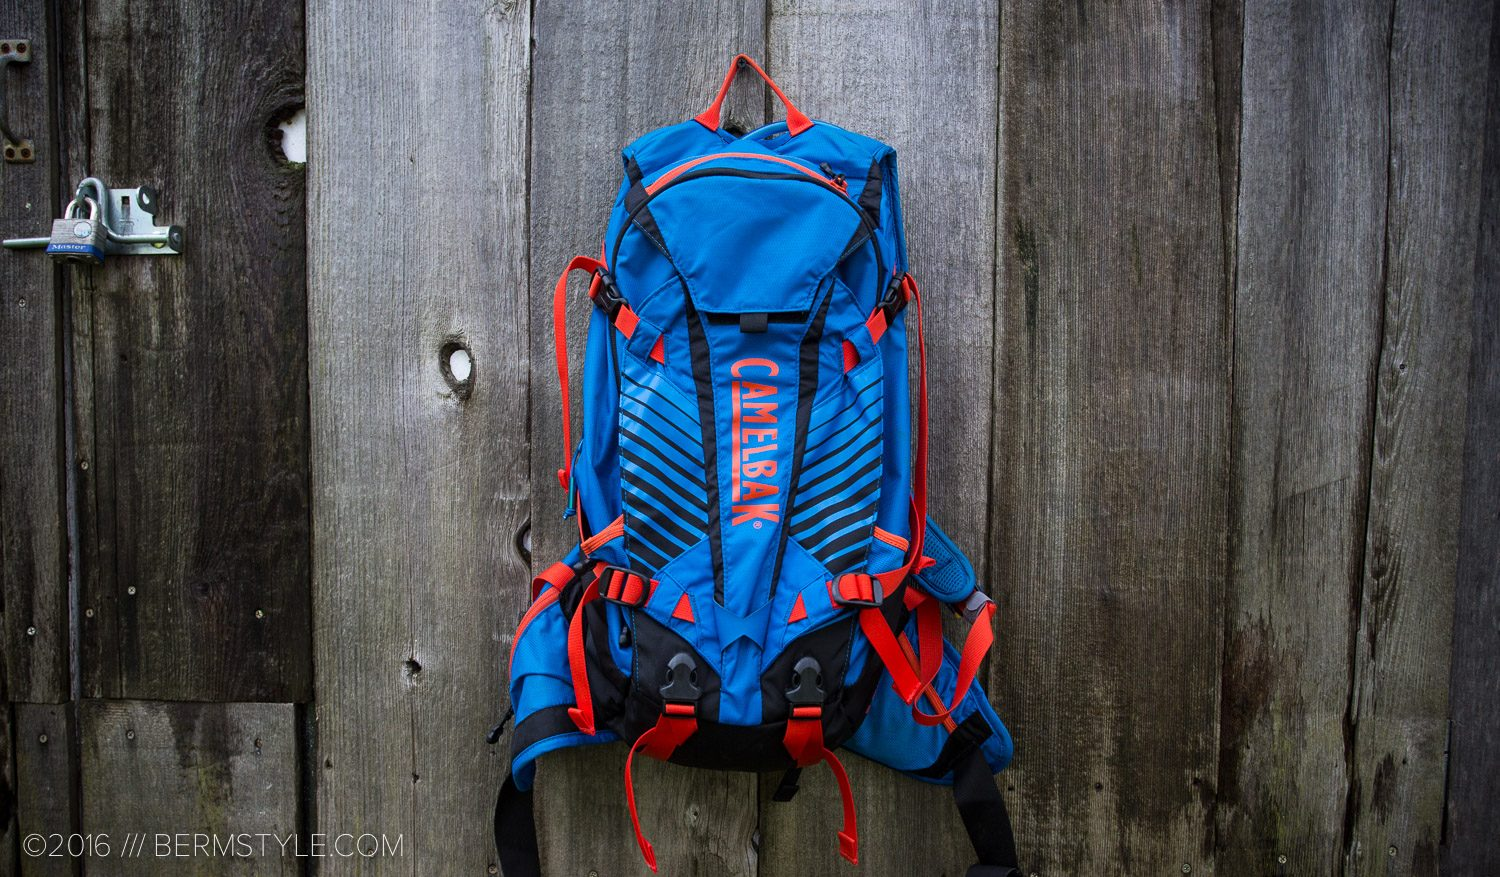 Review: Camelbak KUDU 12 Hydration Pack